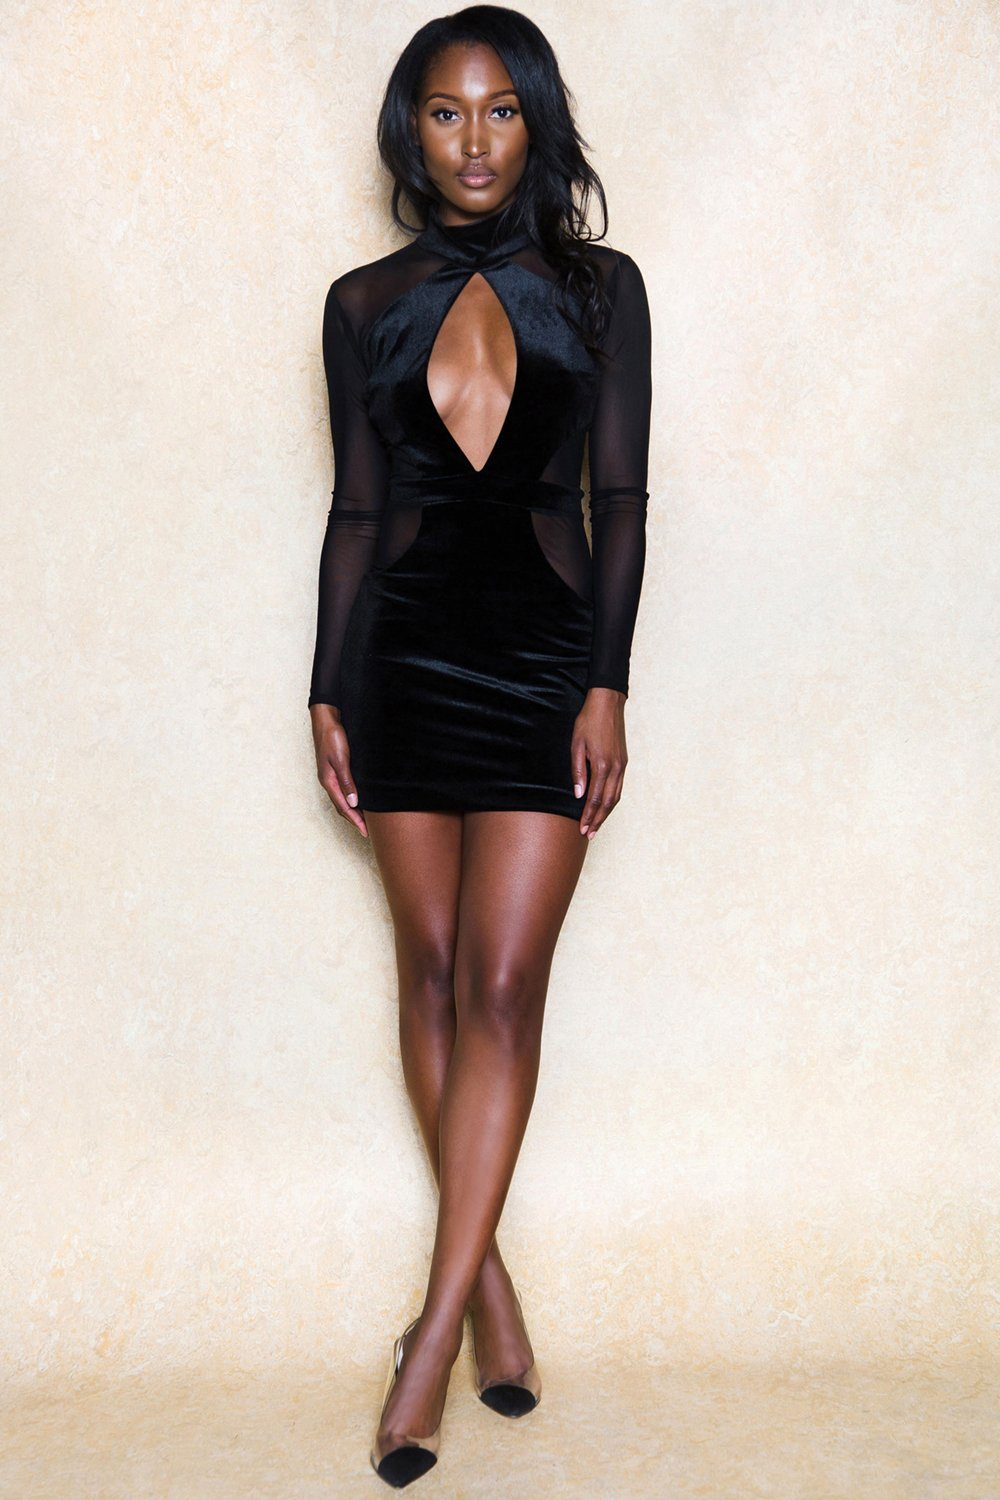 Bring the Wine Crushed Velvet Black Mini Dress - Klasha